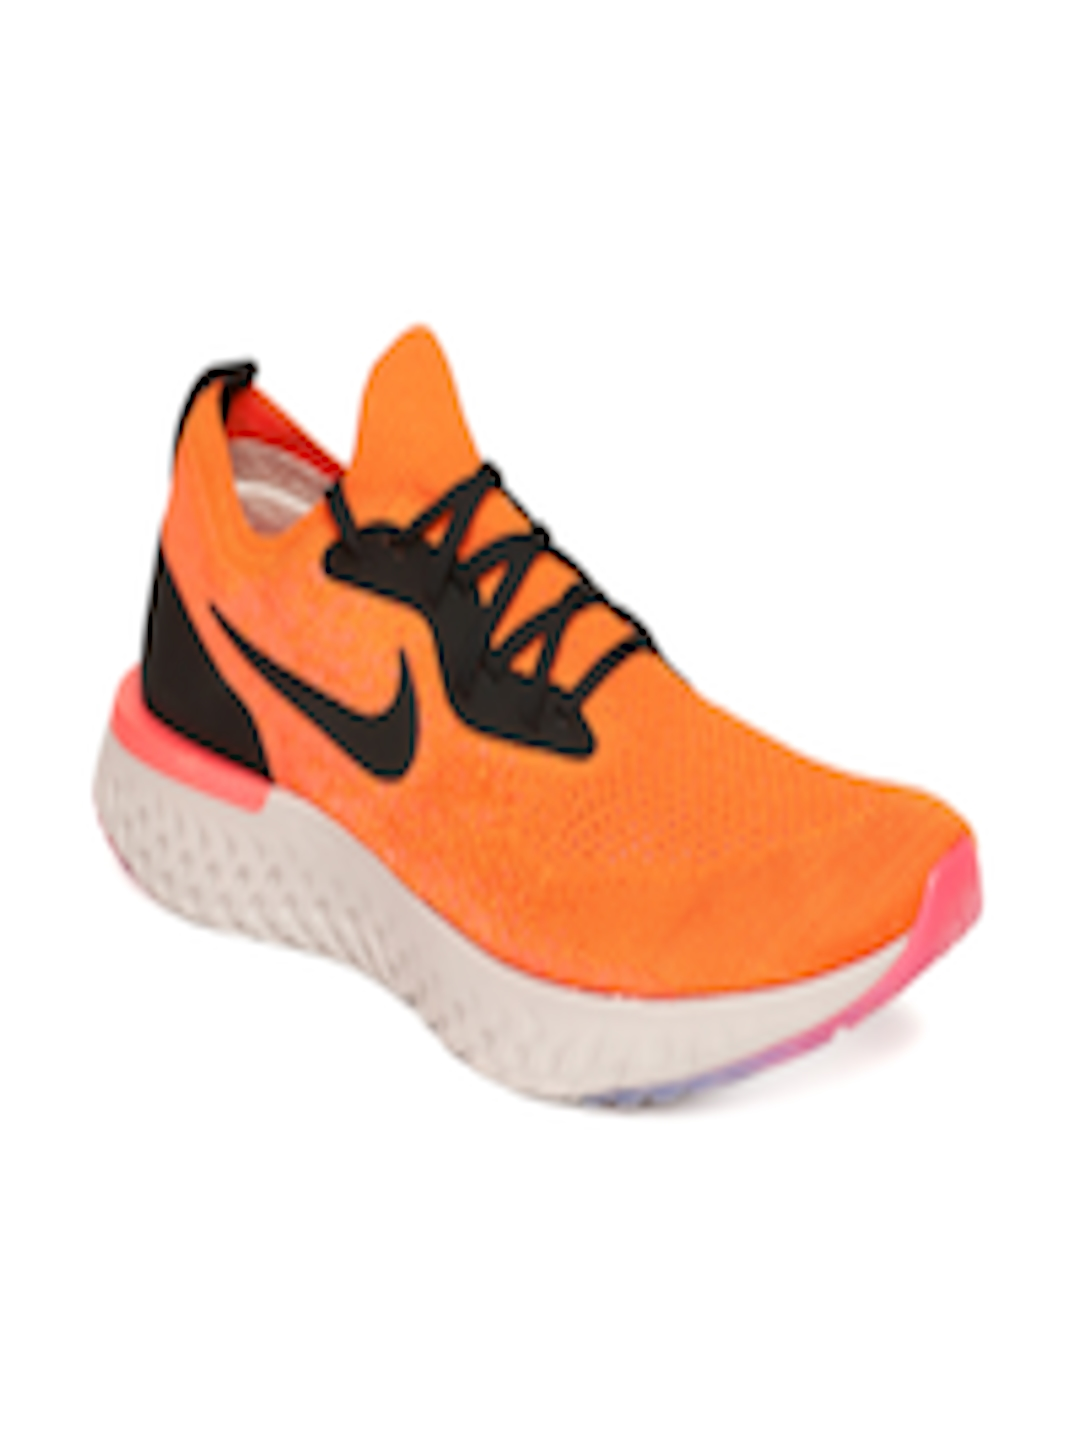 another chance buy good excellent quality Buy Nike Men Orange EPIC REACT FLYKNIT Running Shoes - - Footwear for Men